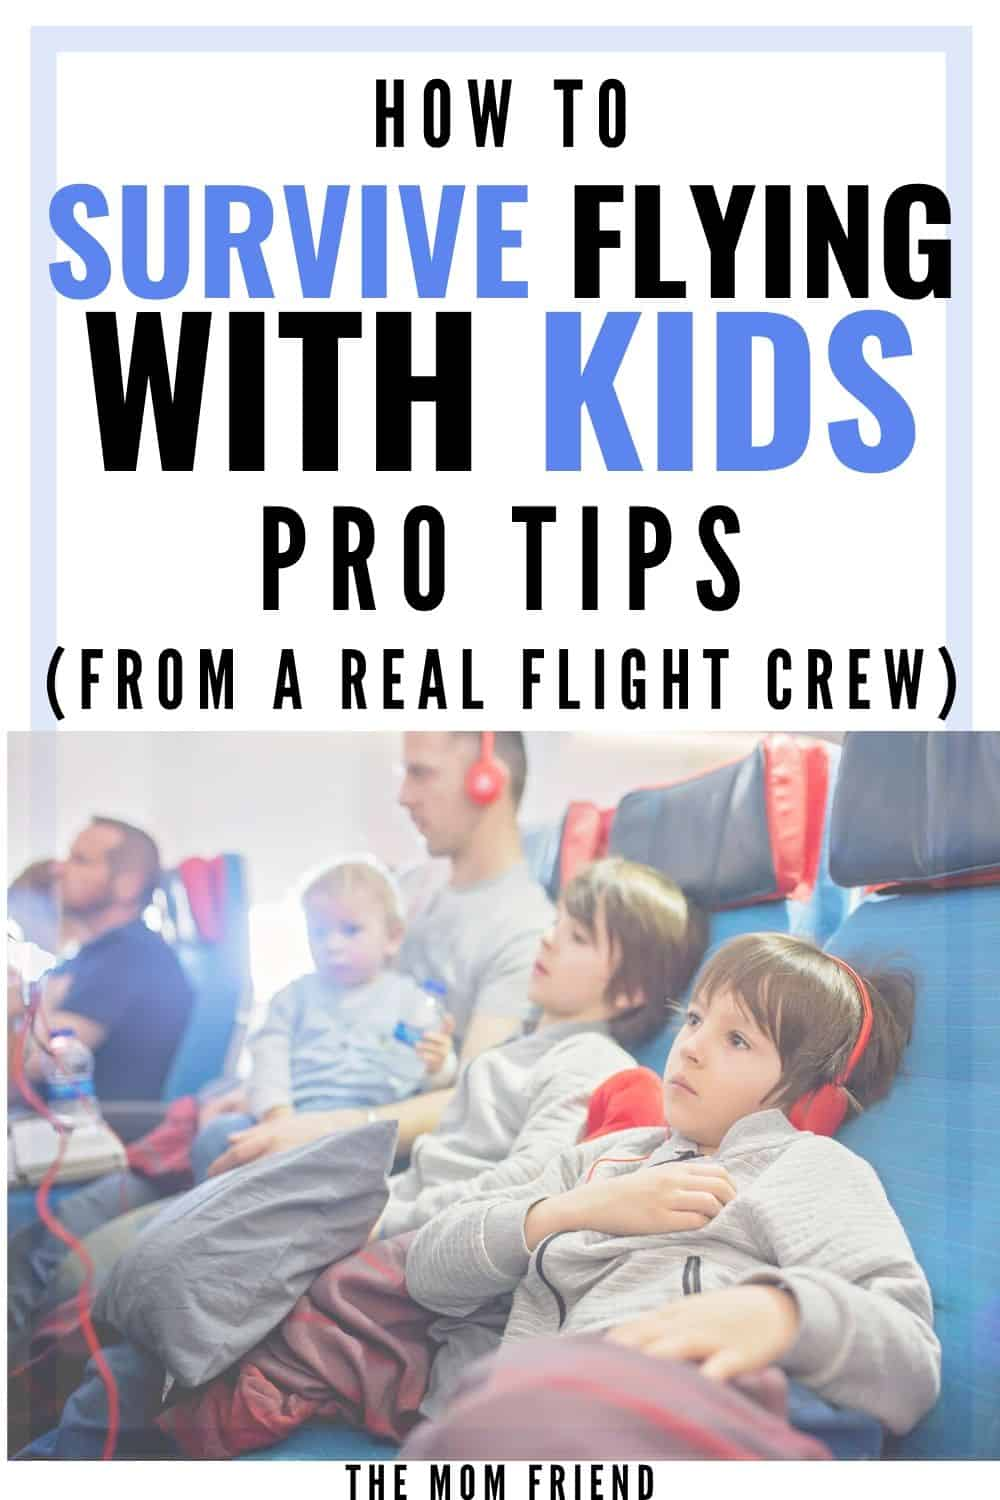 family on airplane traveling with kids with text how to survive flying with kids pro tips from a real flight crew